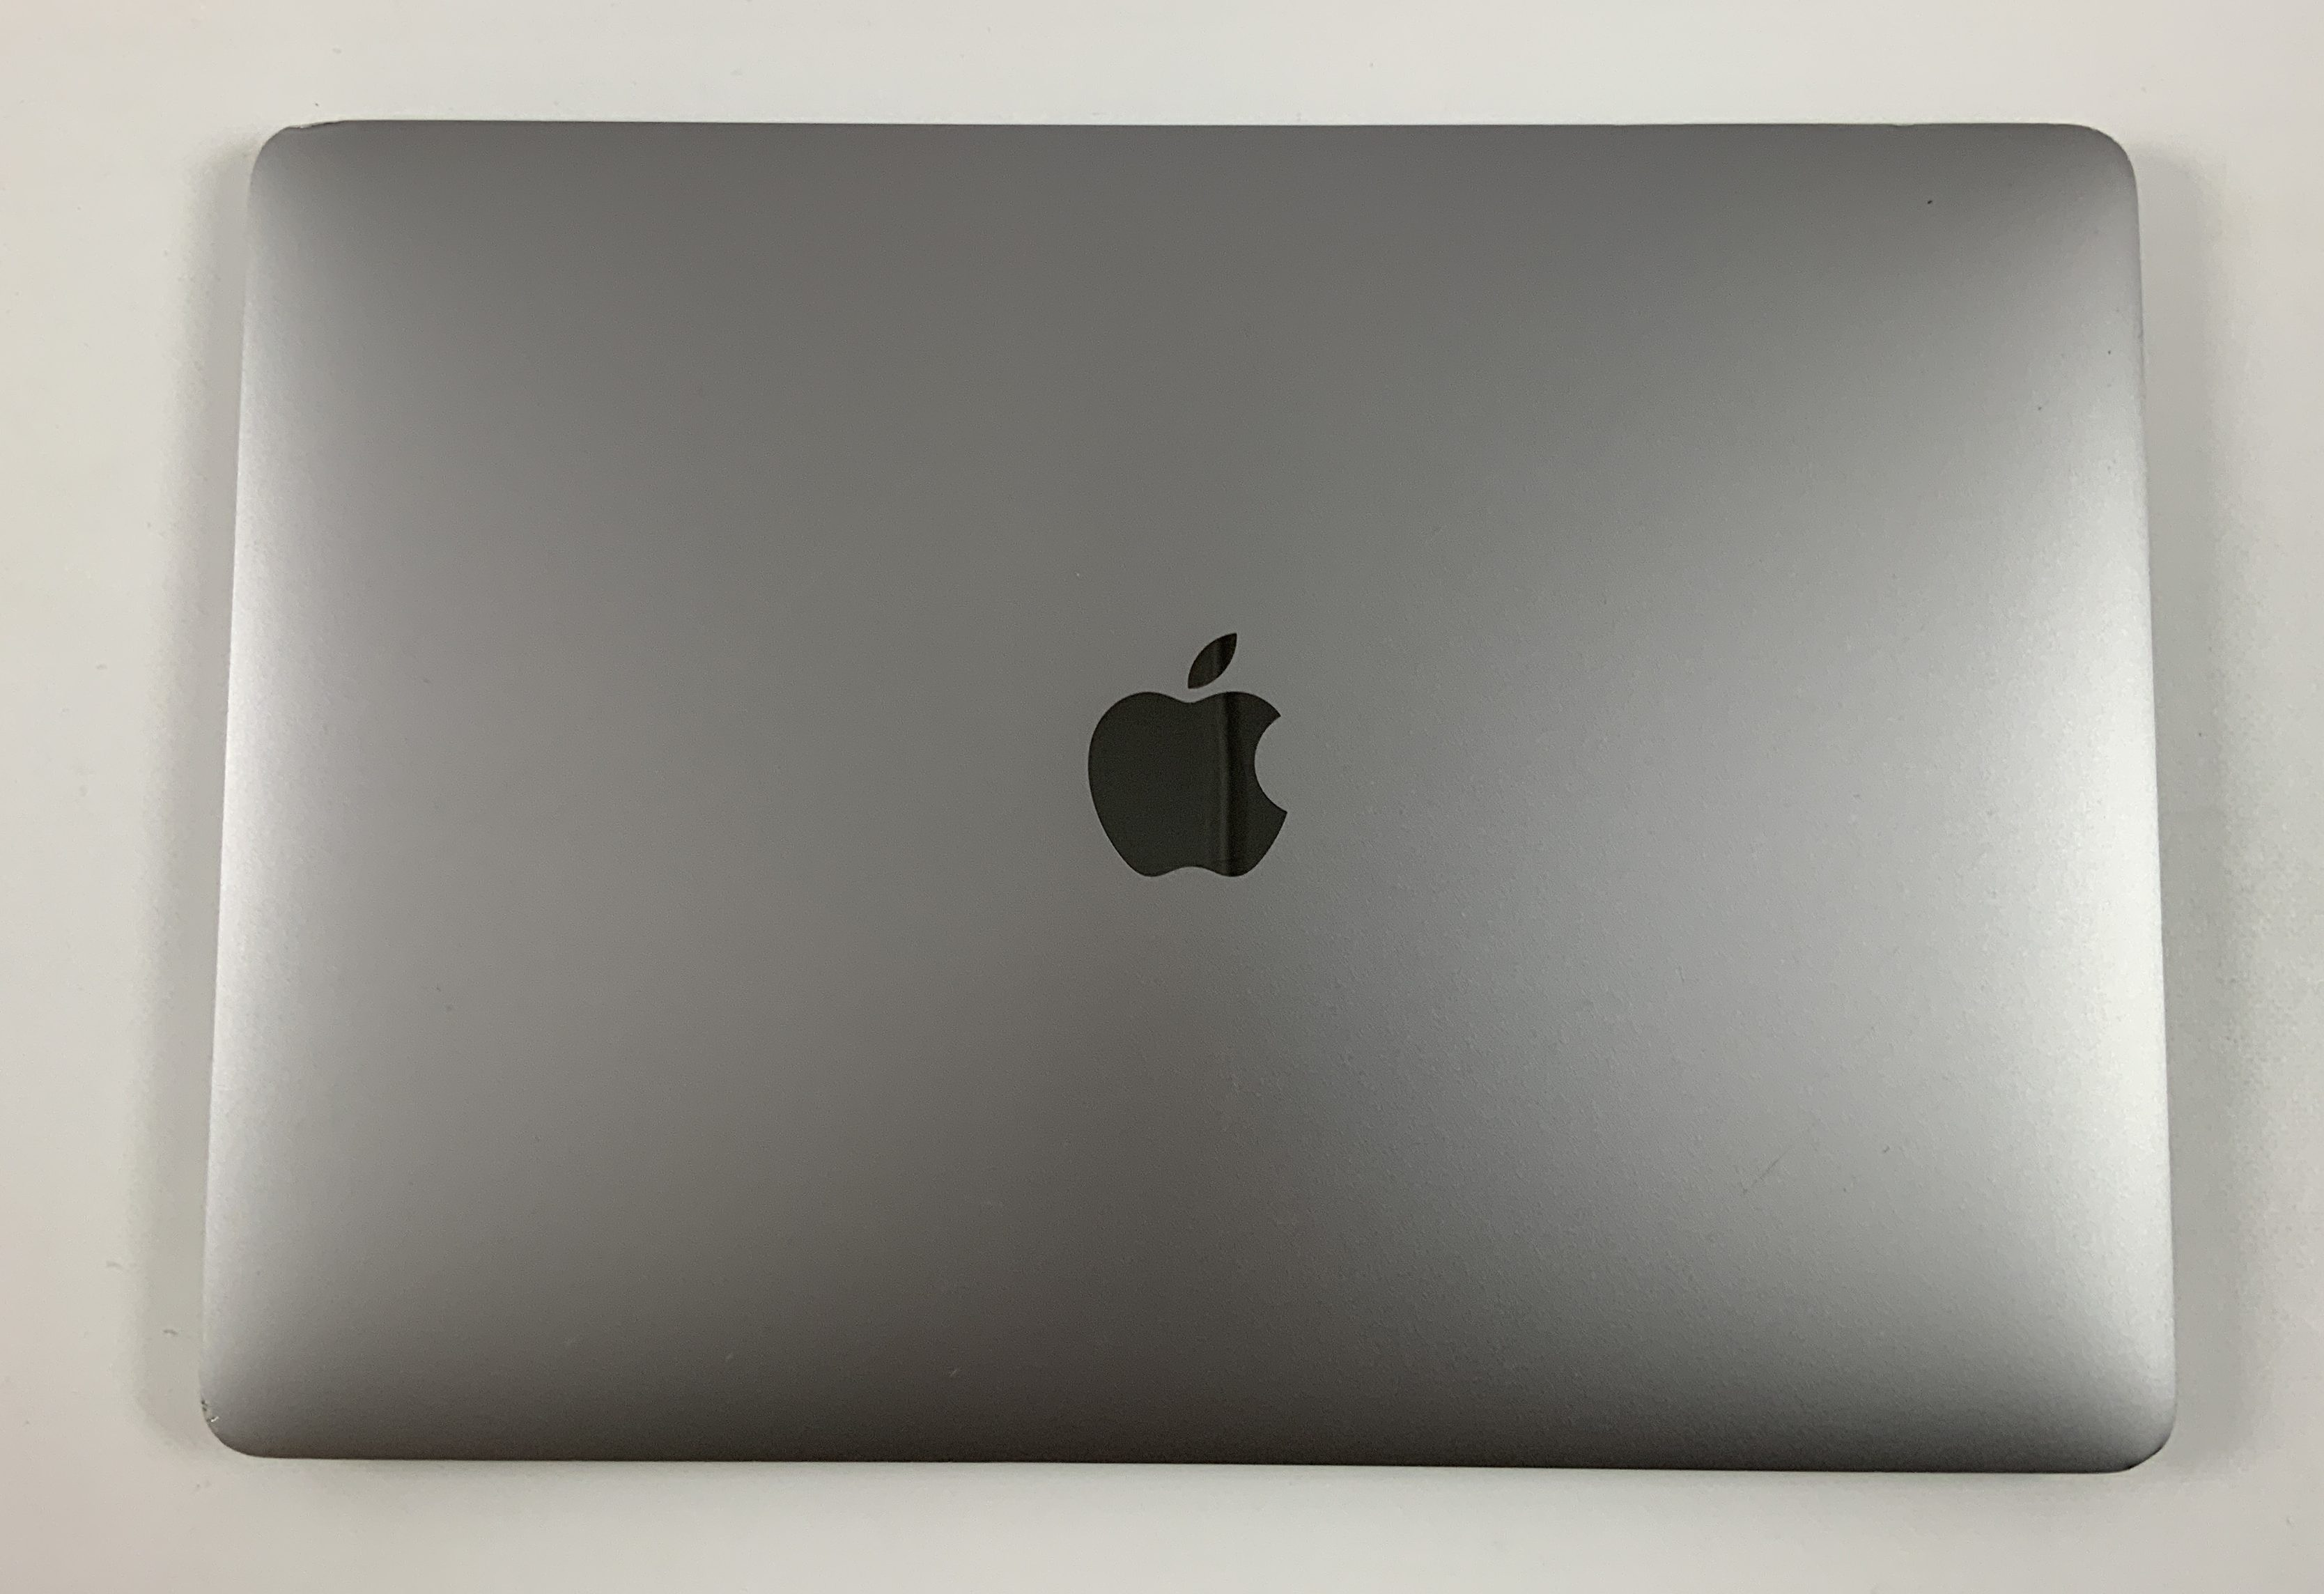 "MacBook Pro 13"" 4TBT Late 2016 (Intel Core i5 2.9 GHz 8 GB RAM 256 GB SSD), Space Gray, Intel Core i5 2.9 GHz, 8 GB RAM, 256 GB SSD, Bild 2"